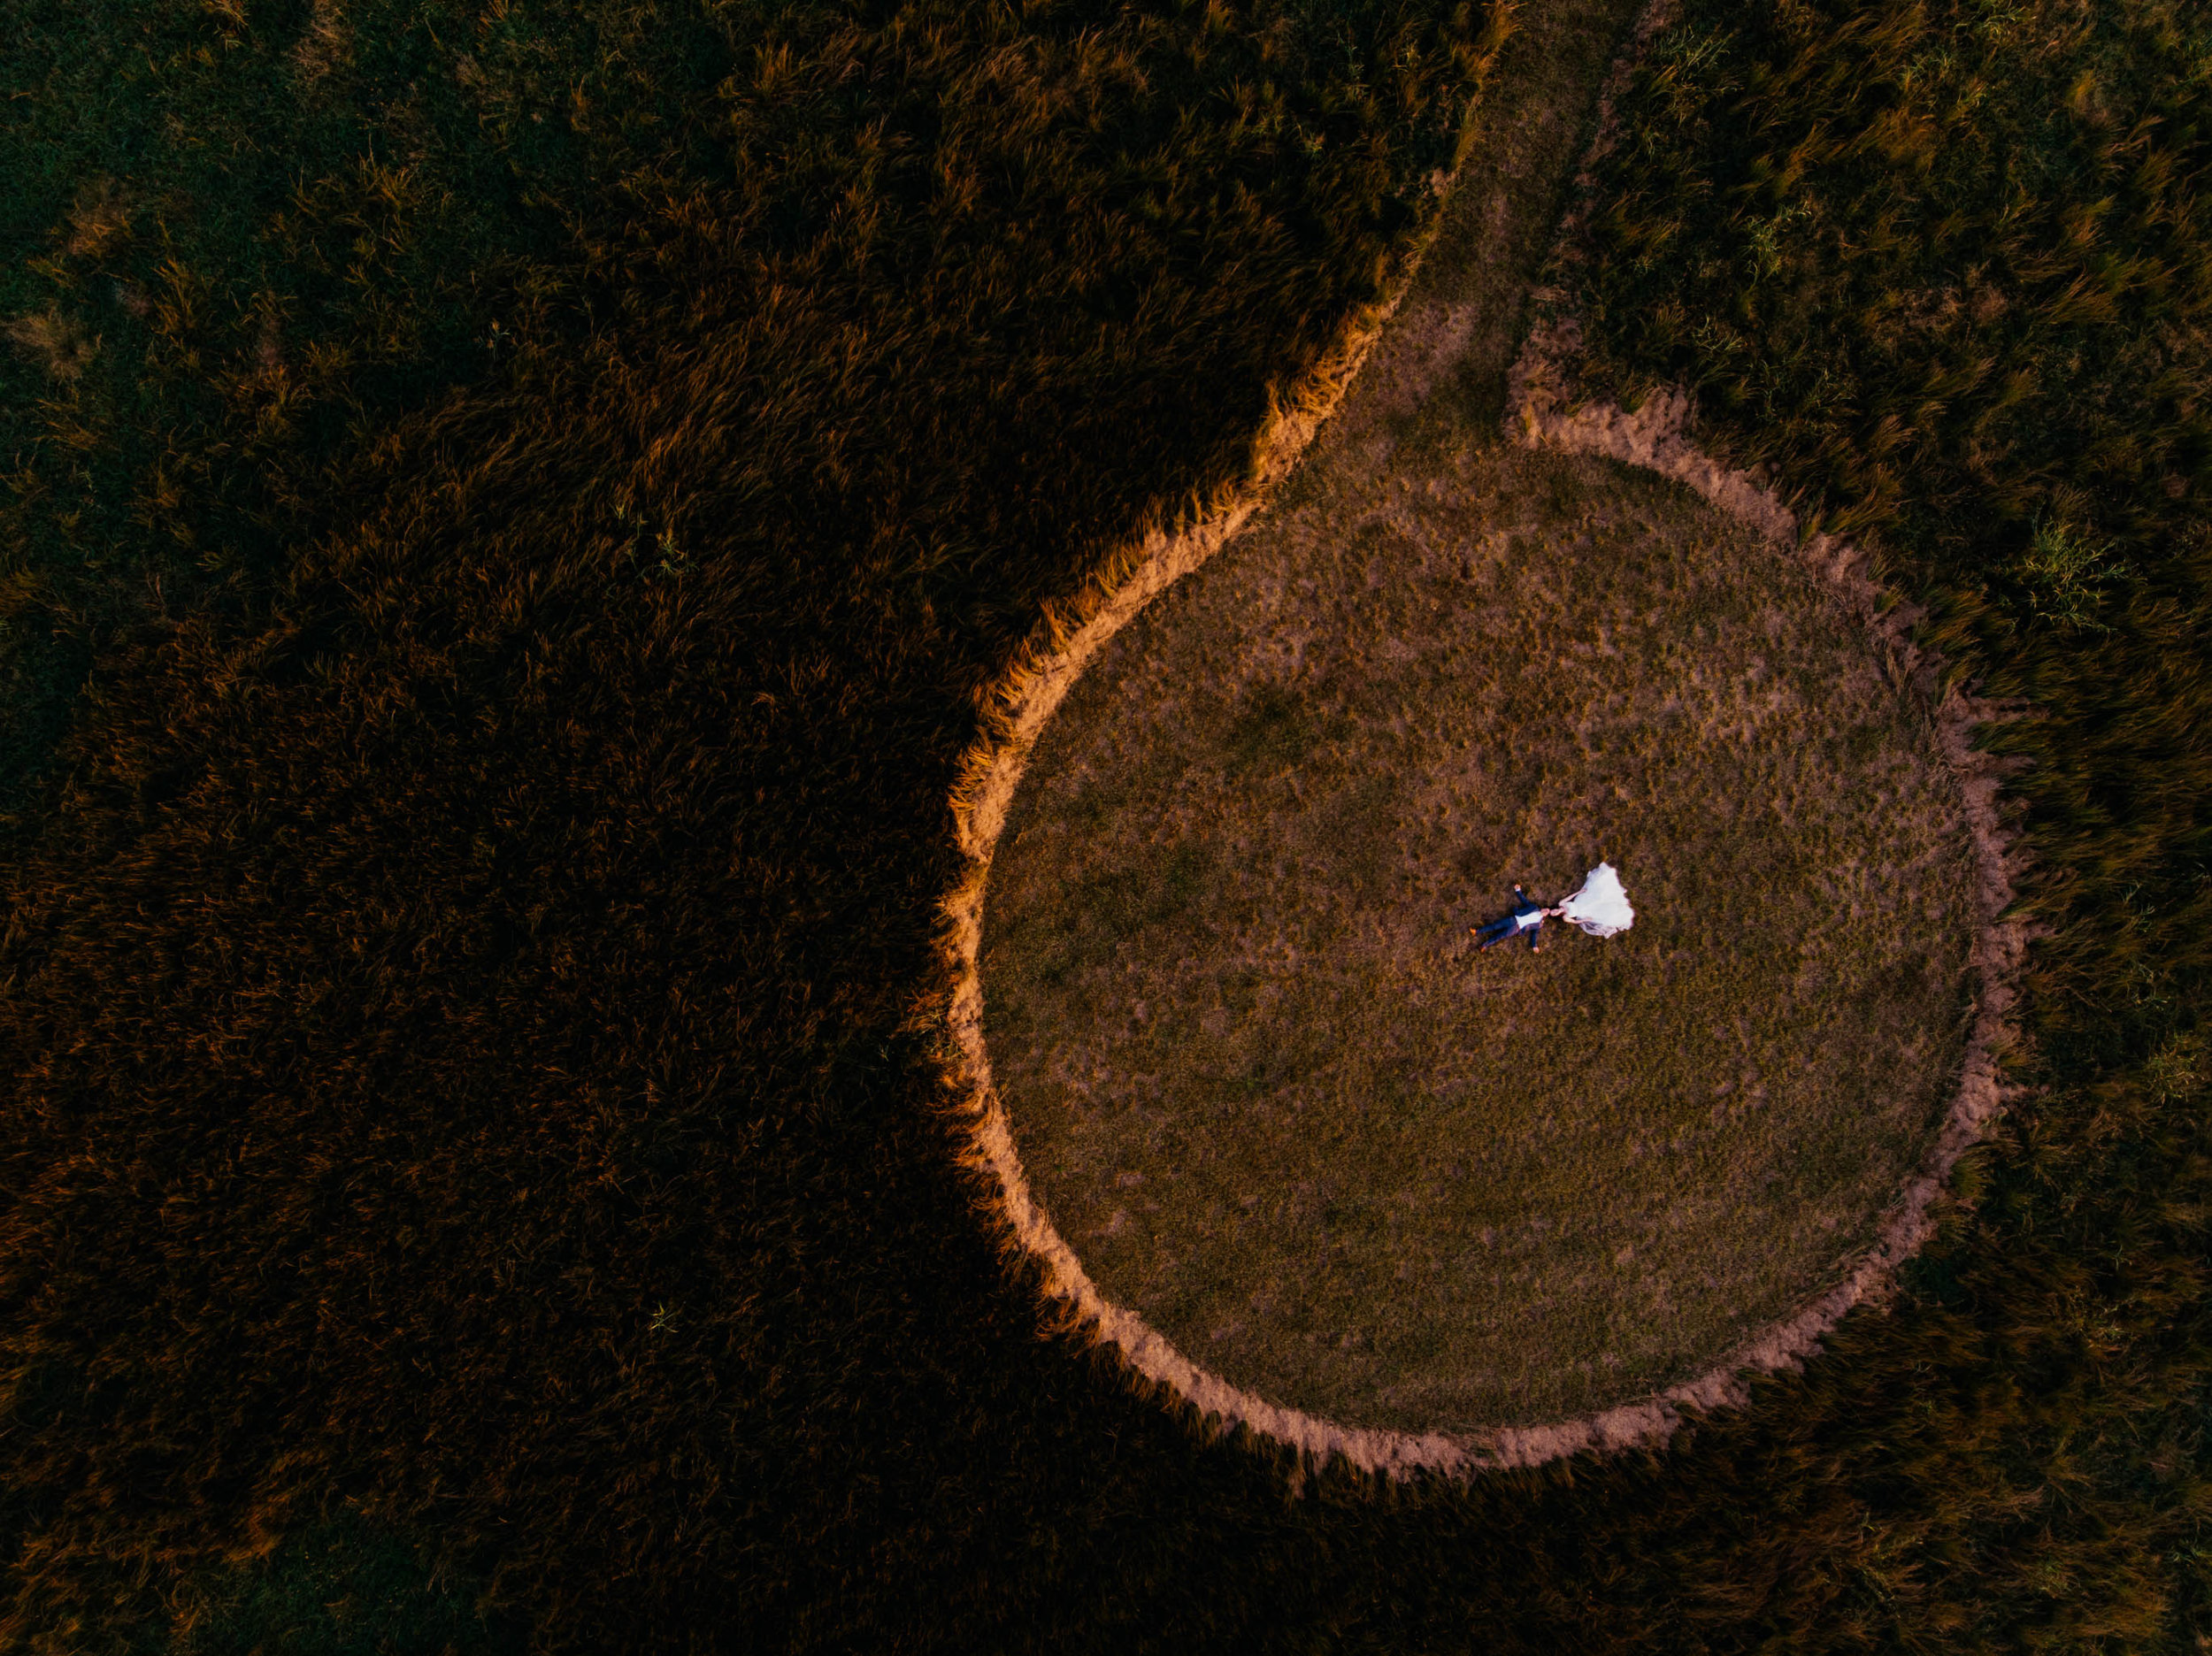 bride and groom laying in a circular cut wheat field during sunset as seen from above